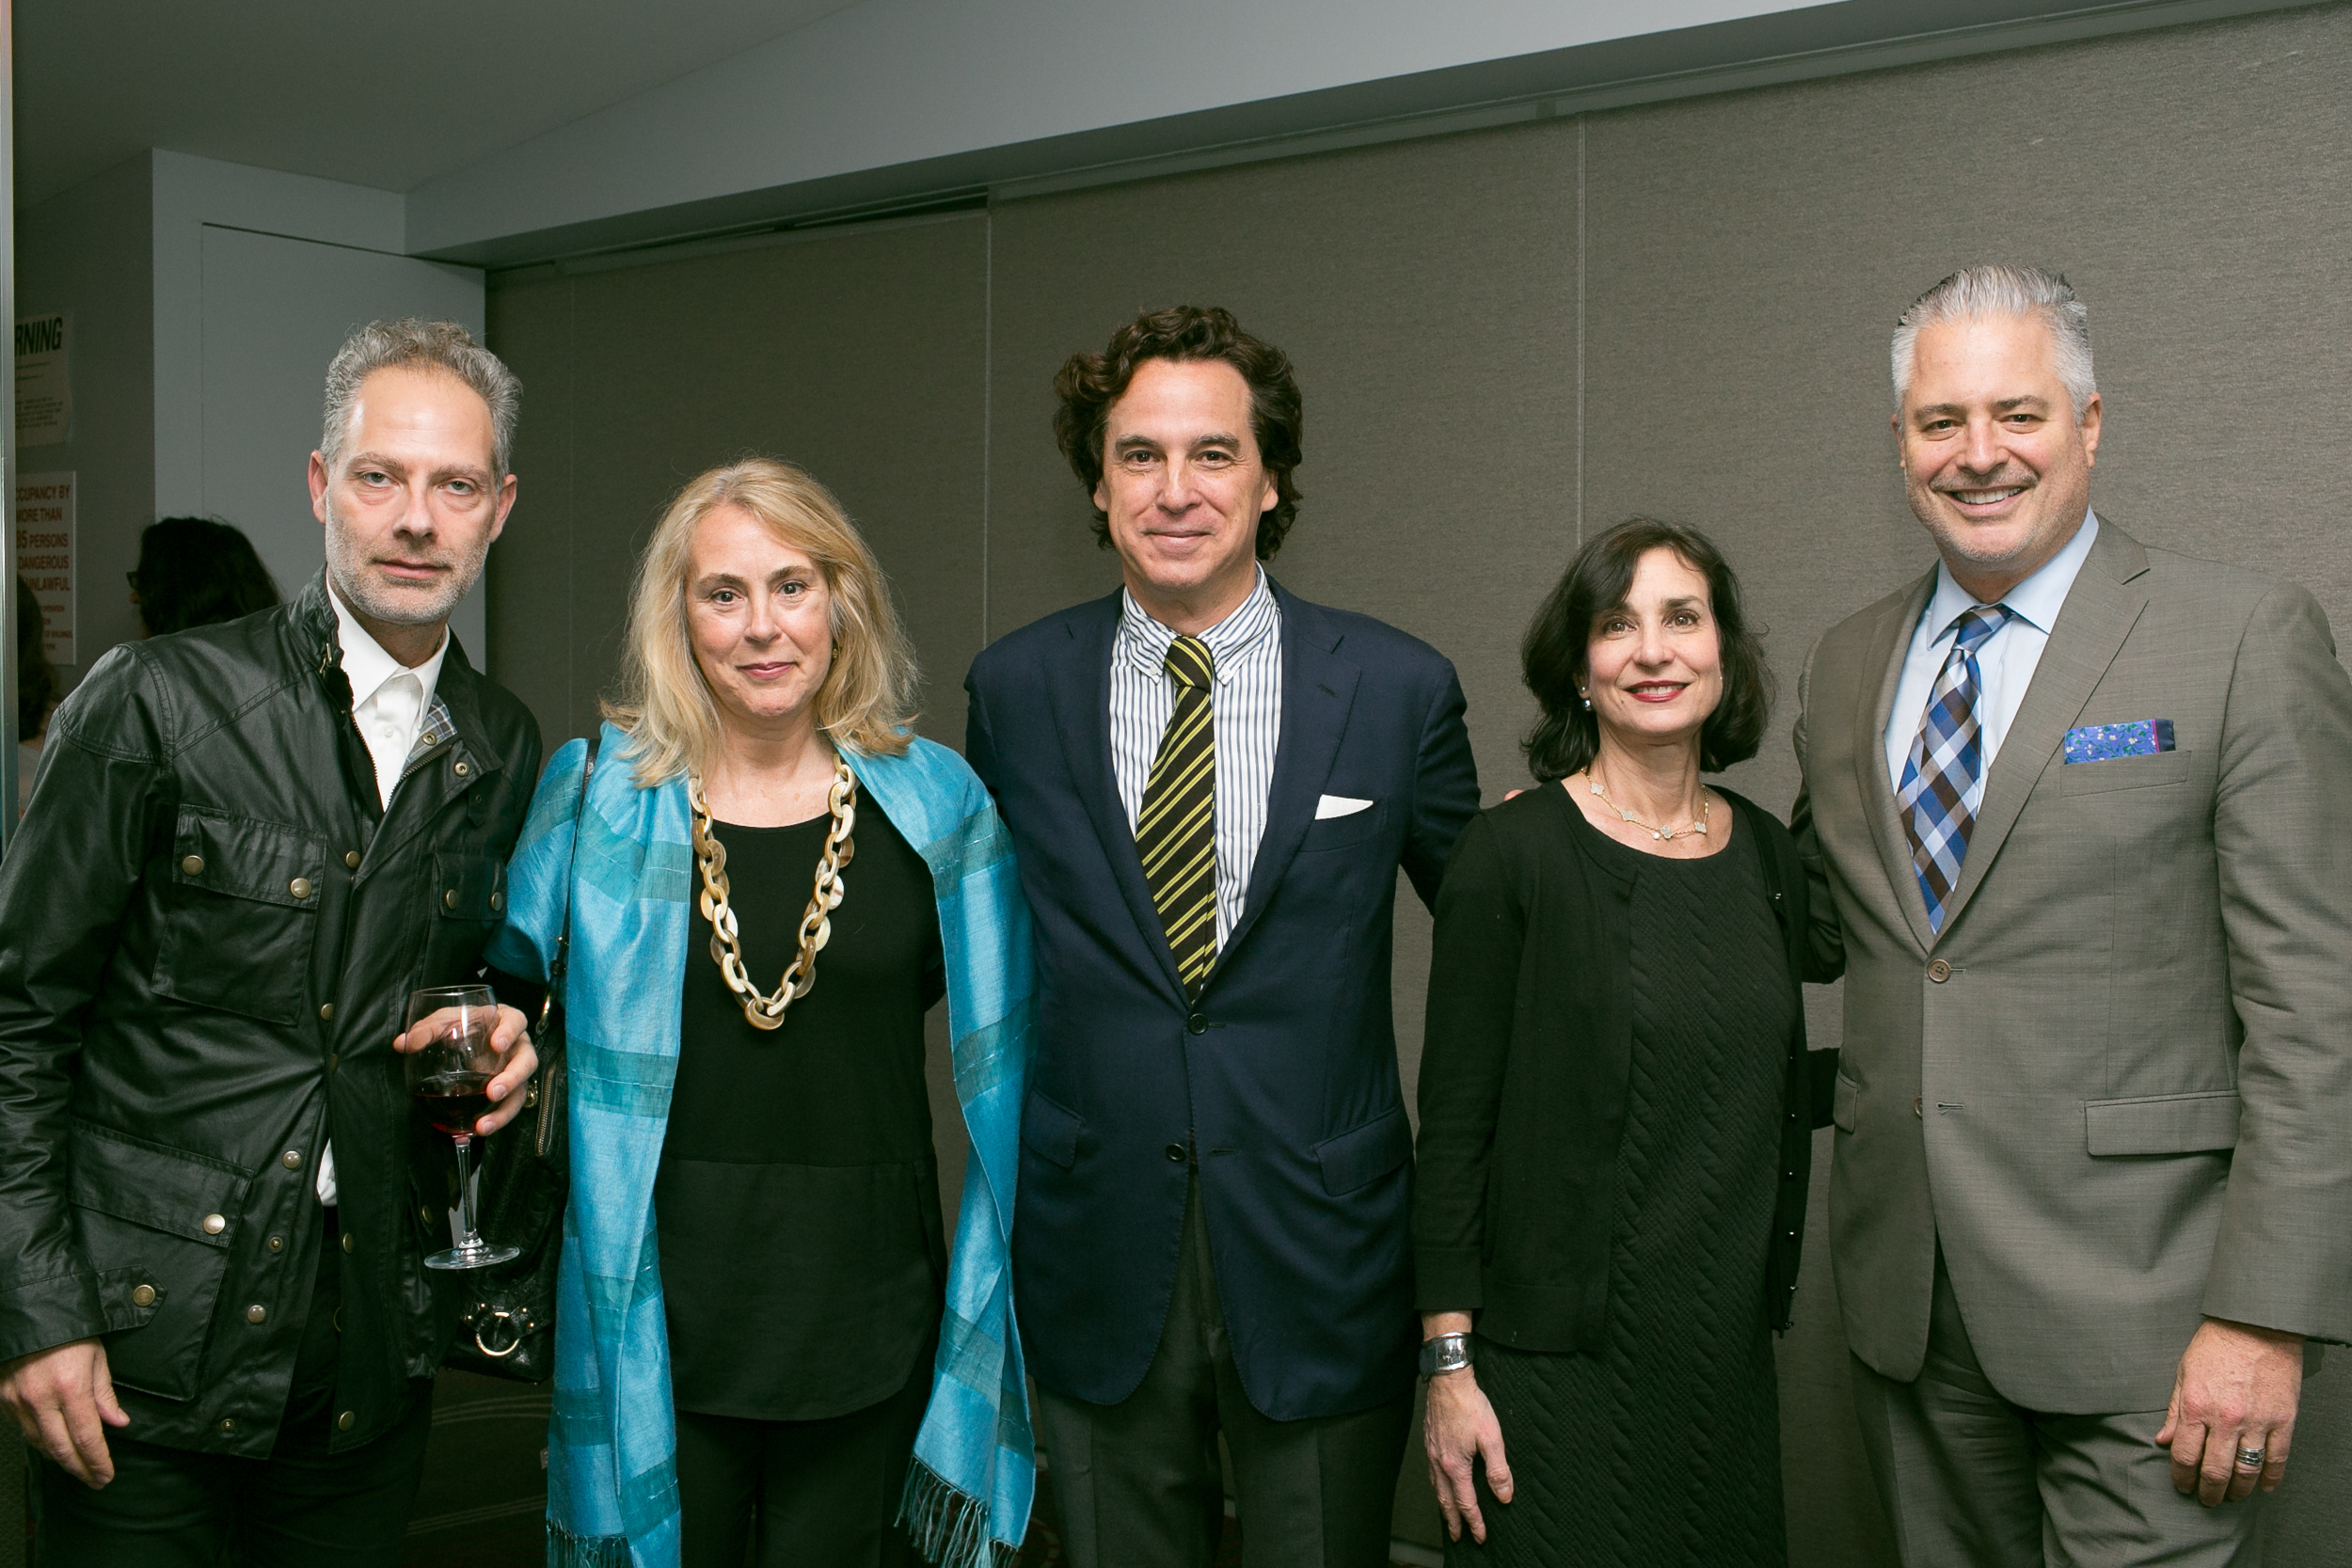 Designer Christopher Maya (center) with Hearst Design Group's Eleftherios Kardamakis, Doretta Sperduto, Brenda Saget and Sean Sullivan